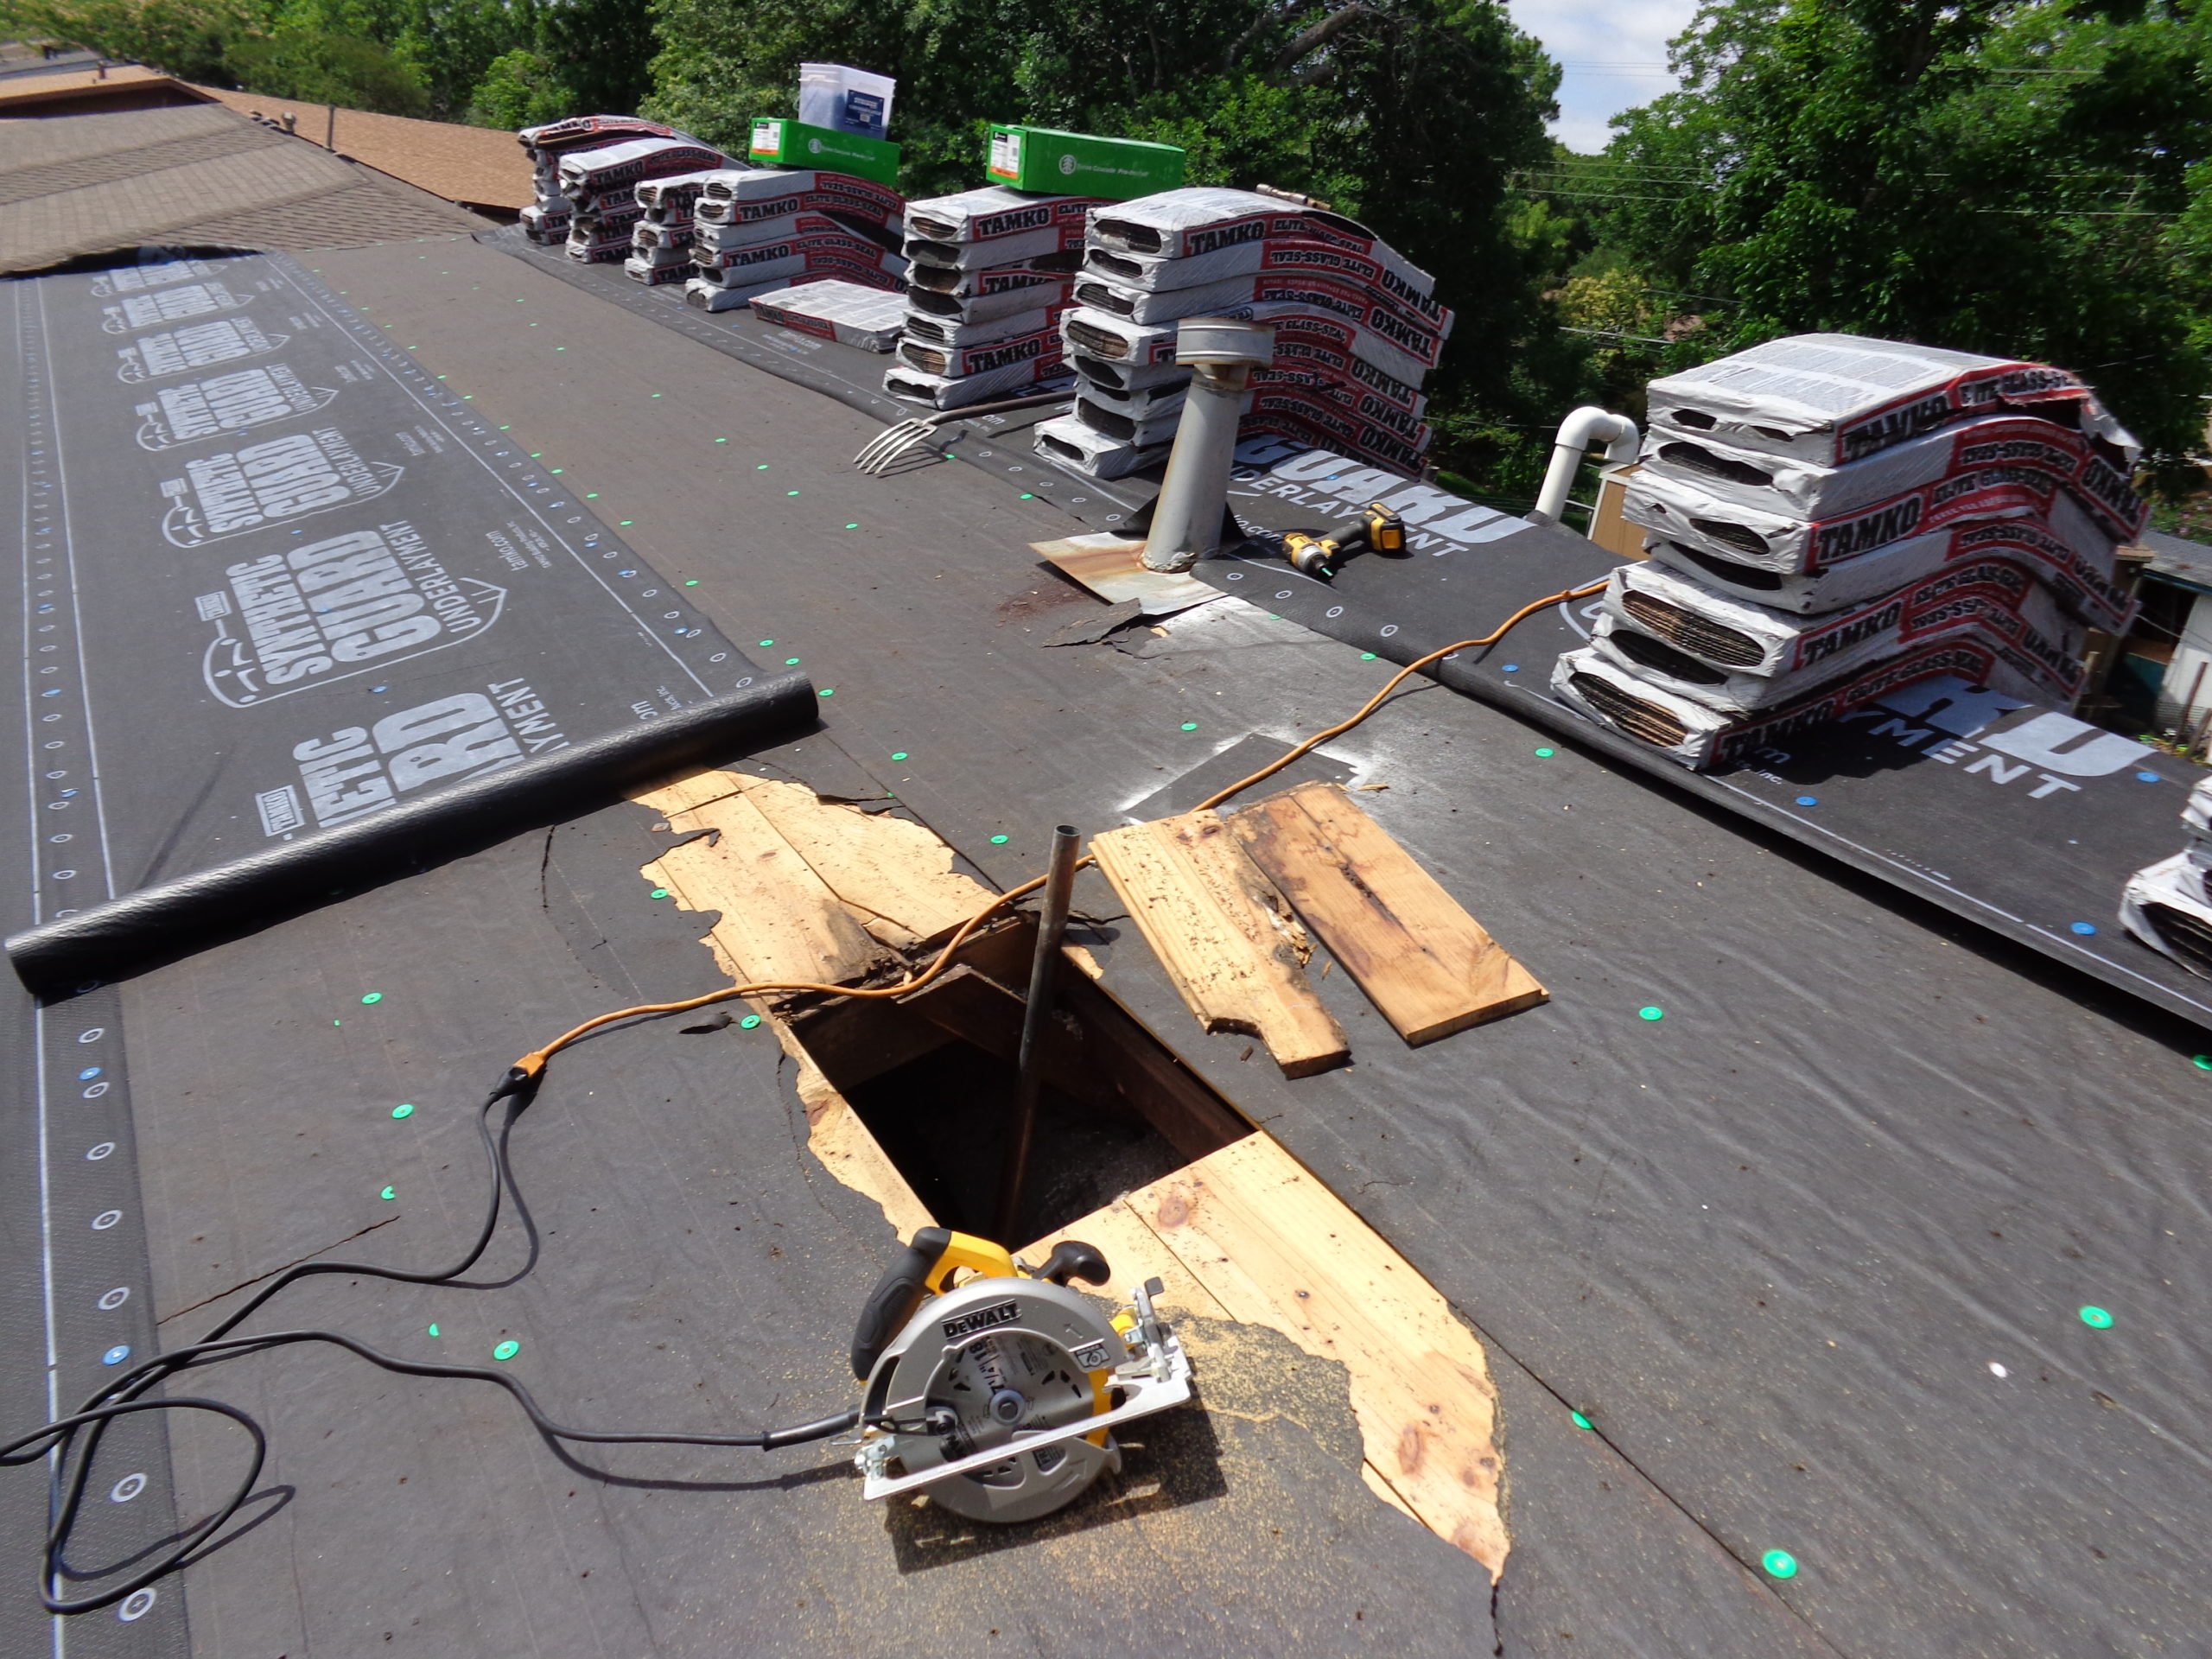 Best Roofing Waco - Residential Roofing Replacement